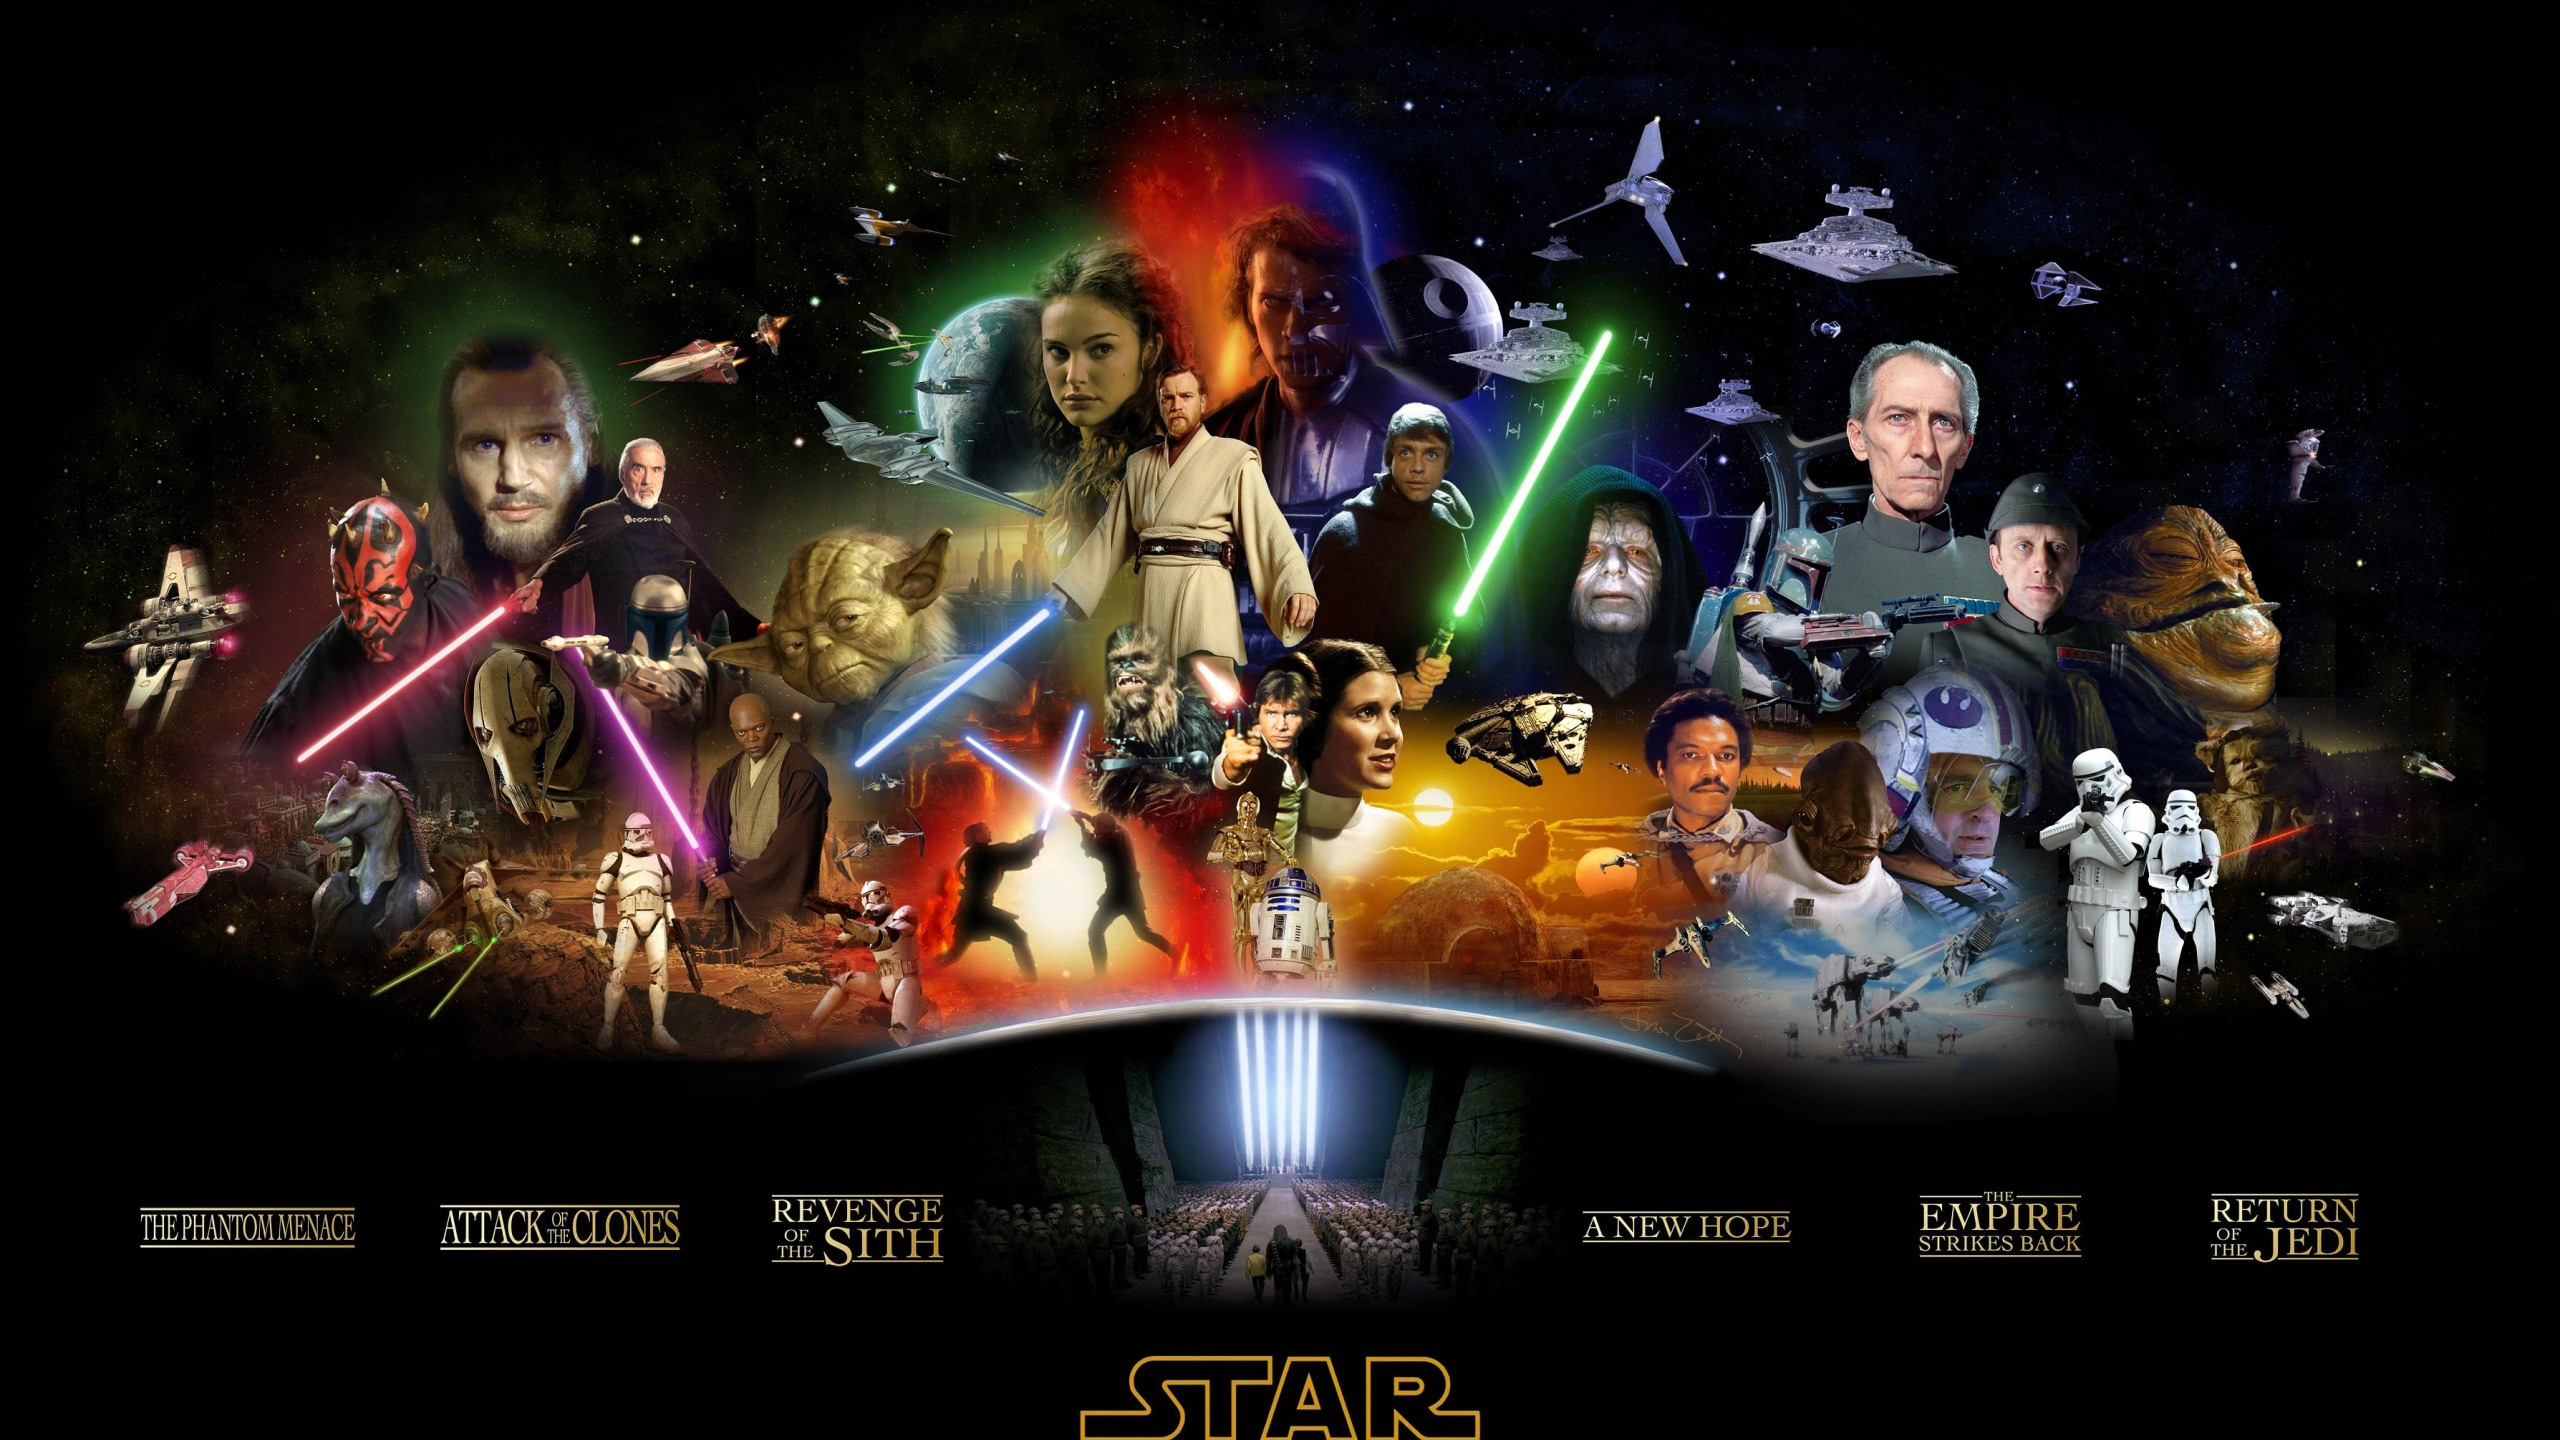 The Star Wars Story 2560x1440 Wallpaper The Hot Desktop Wallpapers And Backgrounds For Your Pc And Mobile